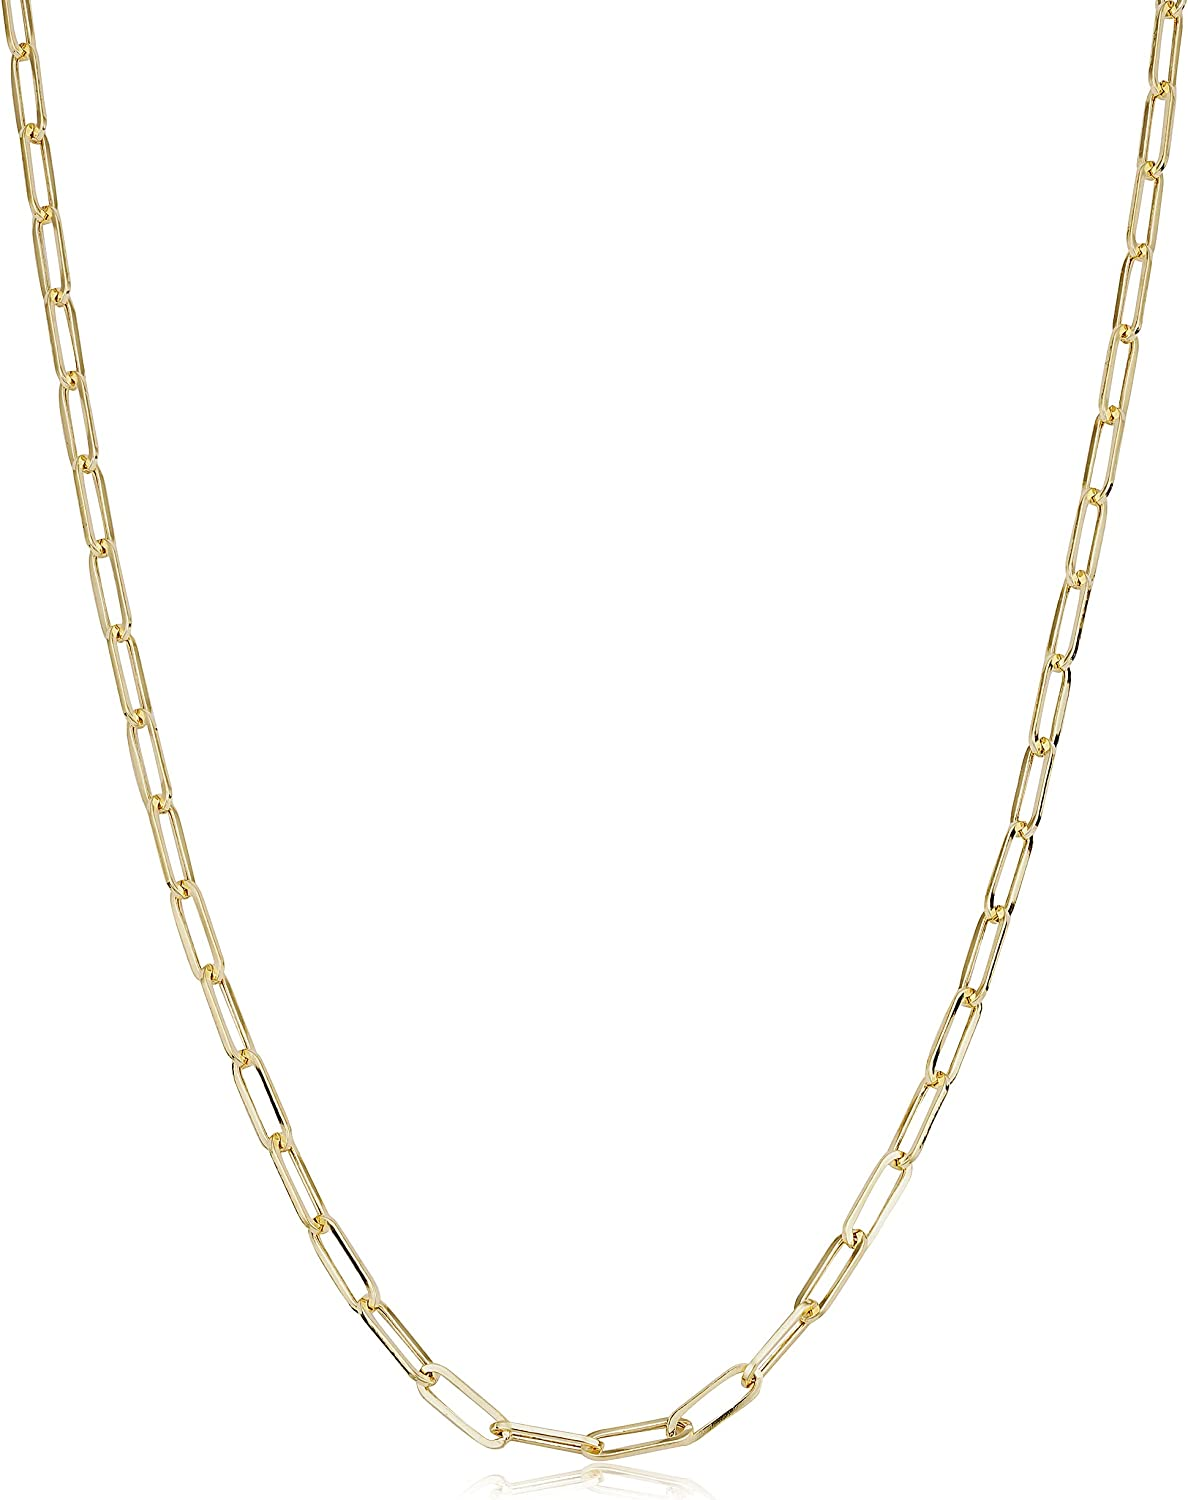 14k Yellow Gold 2.5 mm Paperclip Link Chain Necklace for Women (16, 18, 20, 24, 30 or 36 inch)